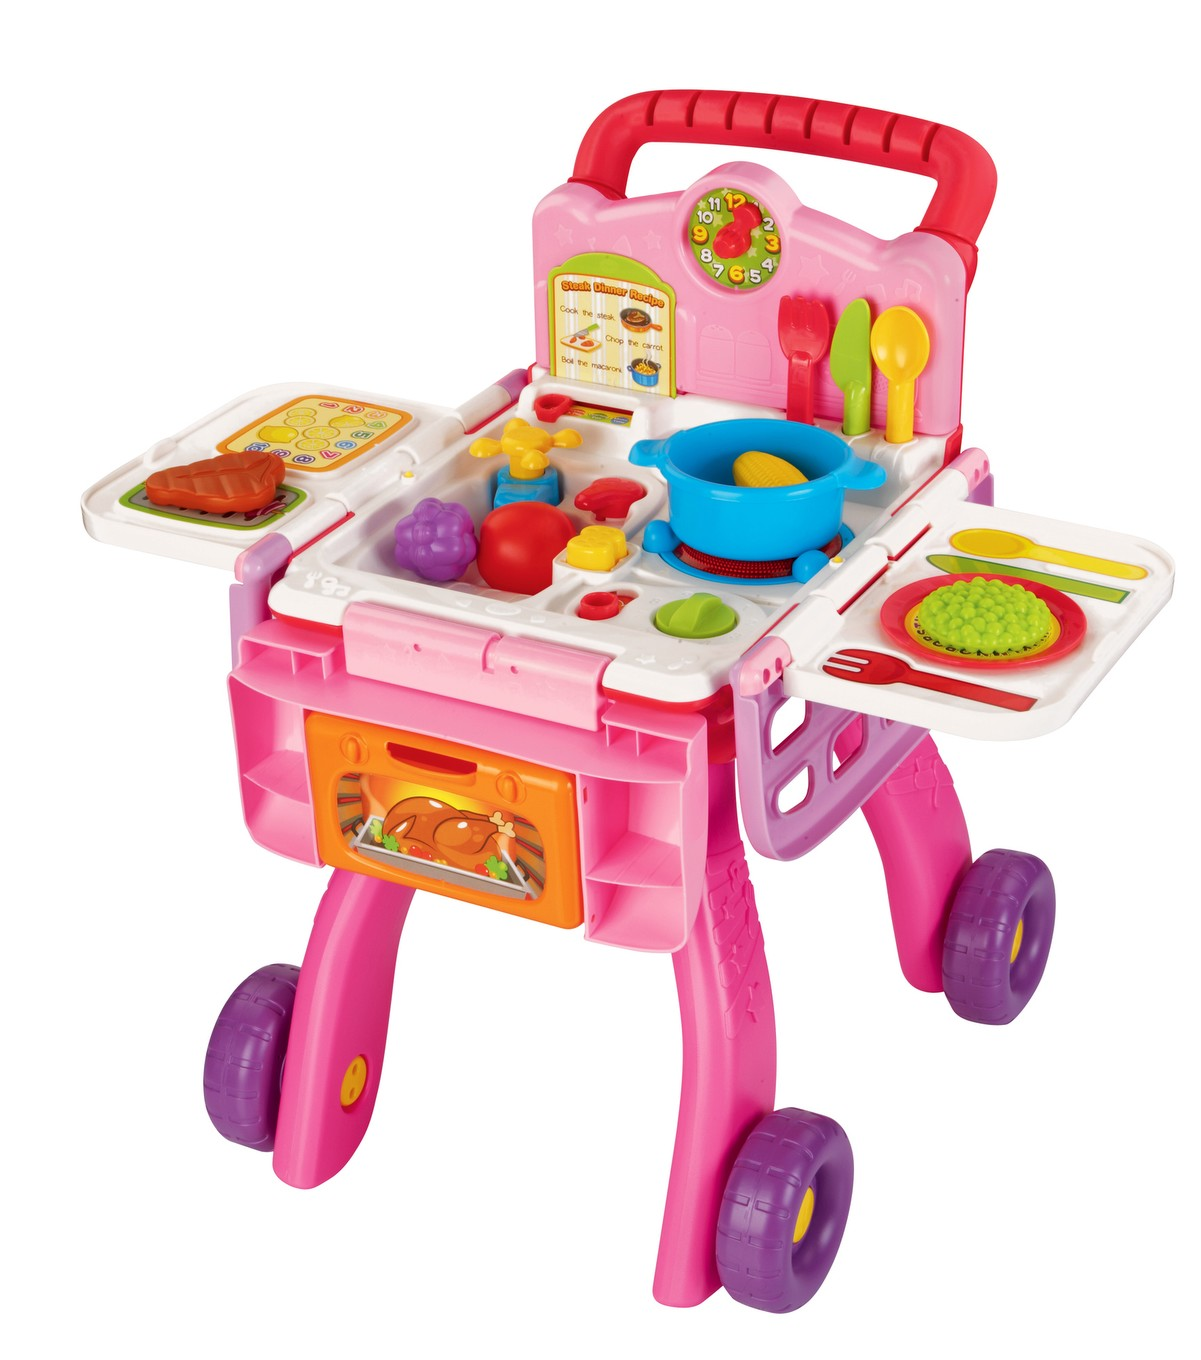 in-1 Shop & Cook Playset - Pink